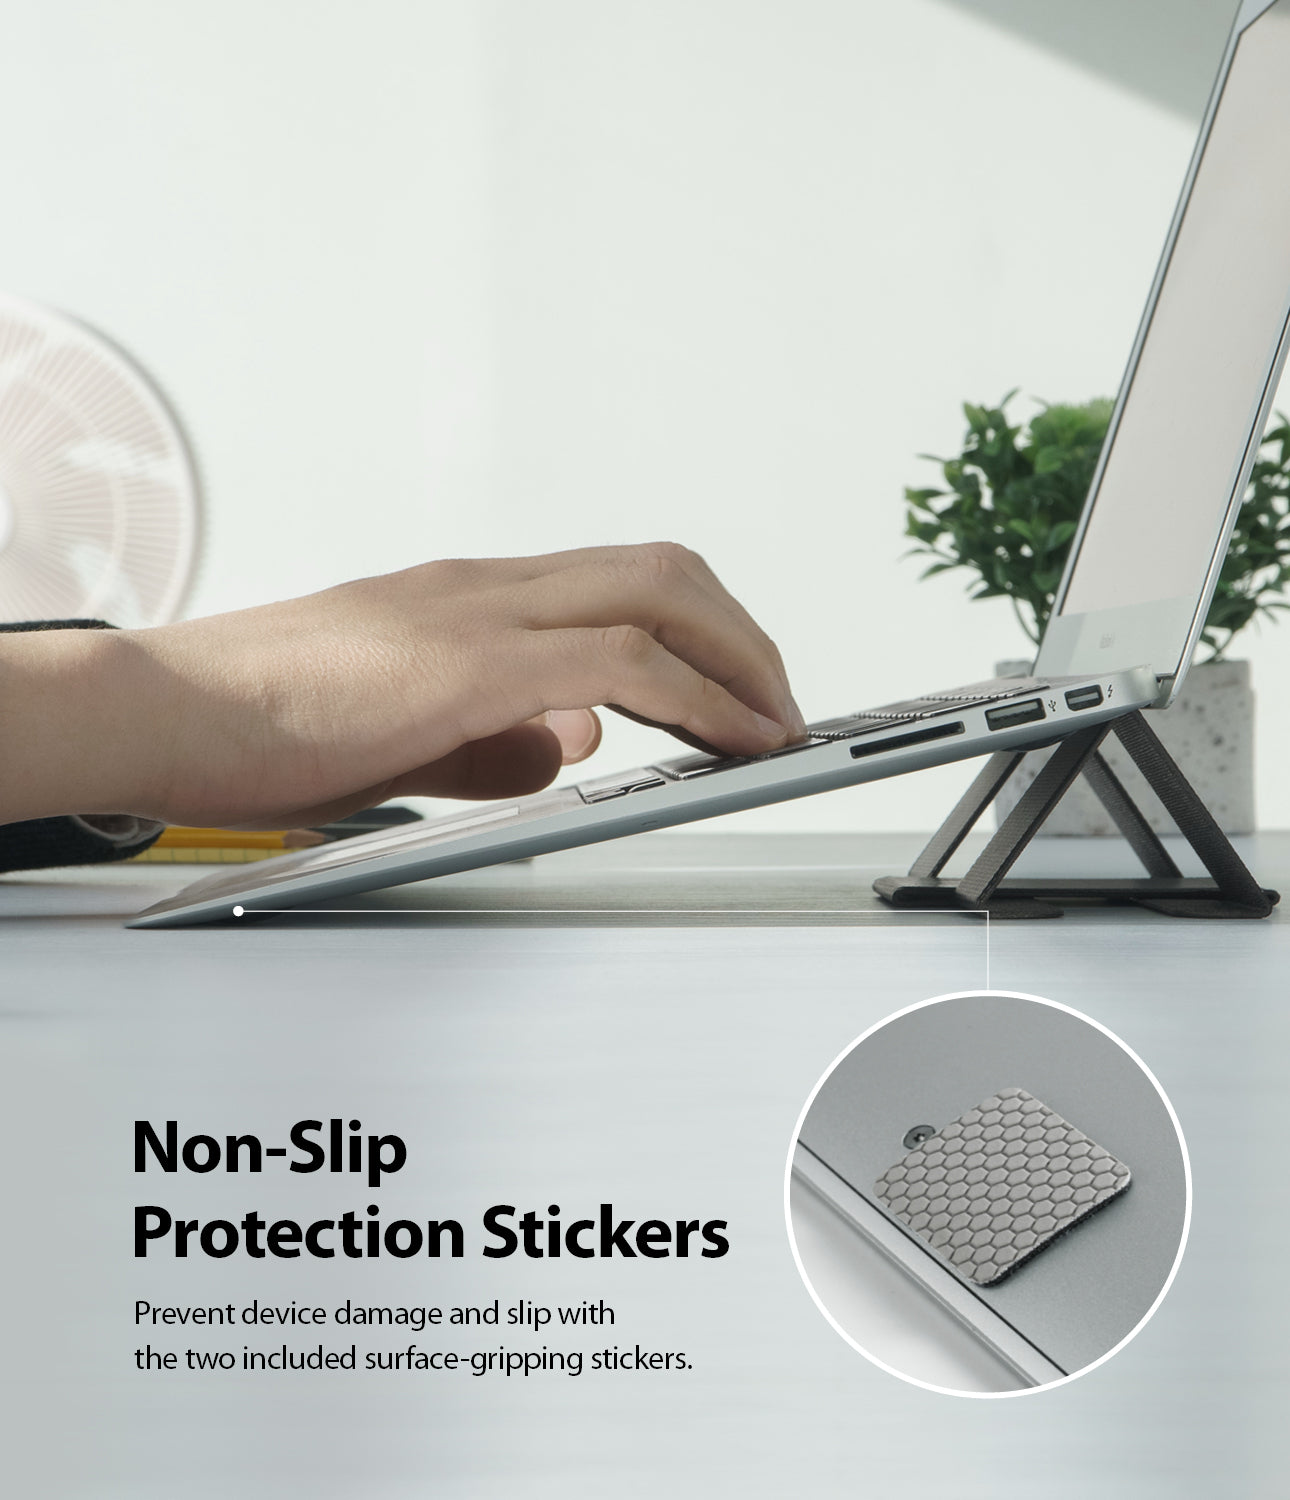 non slip protection stickers